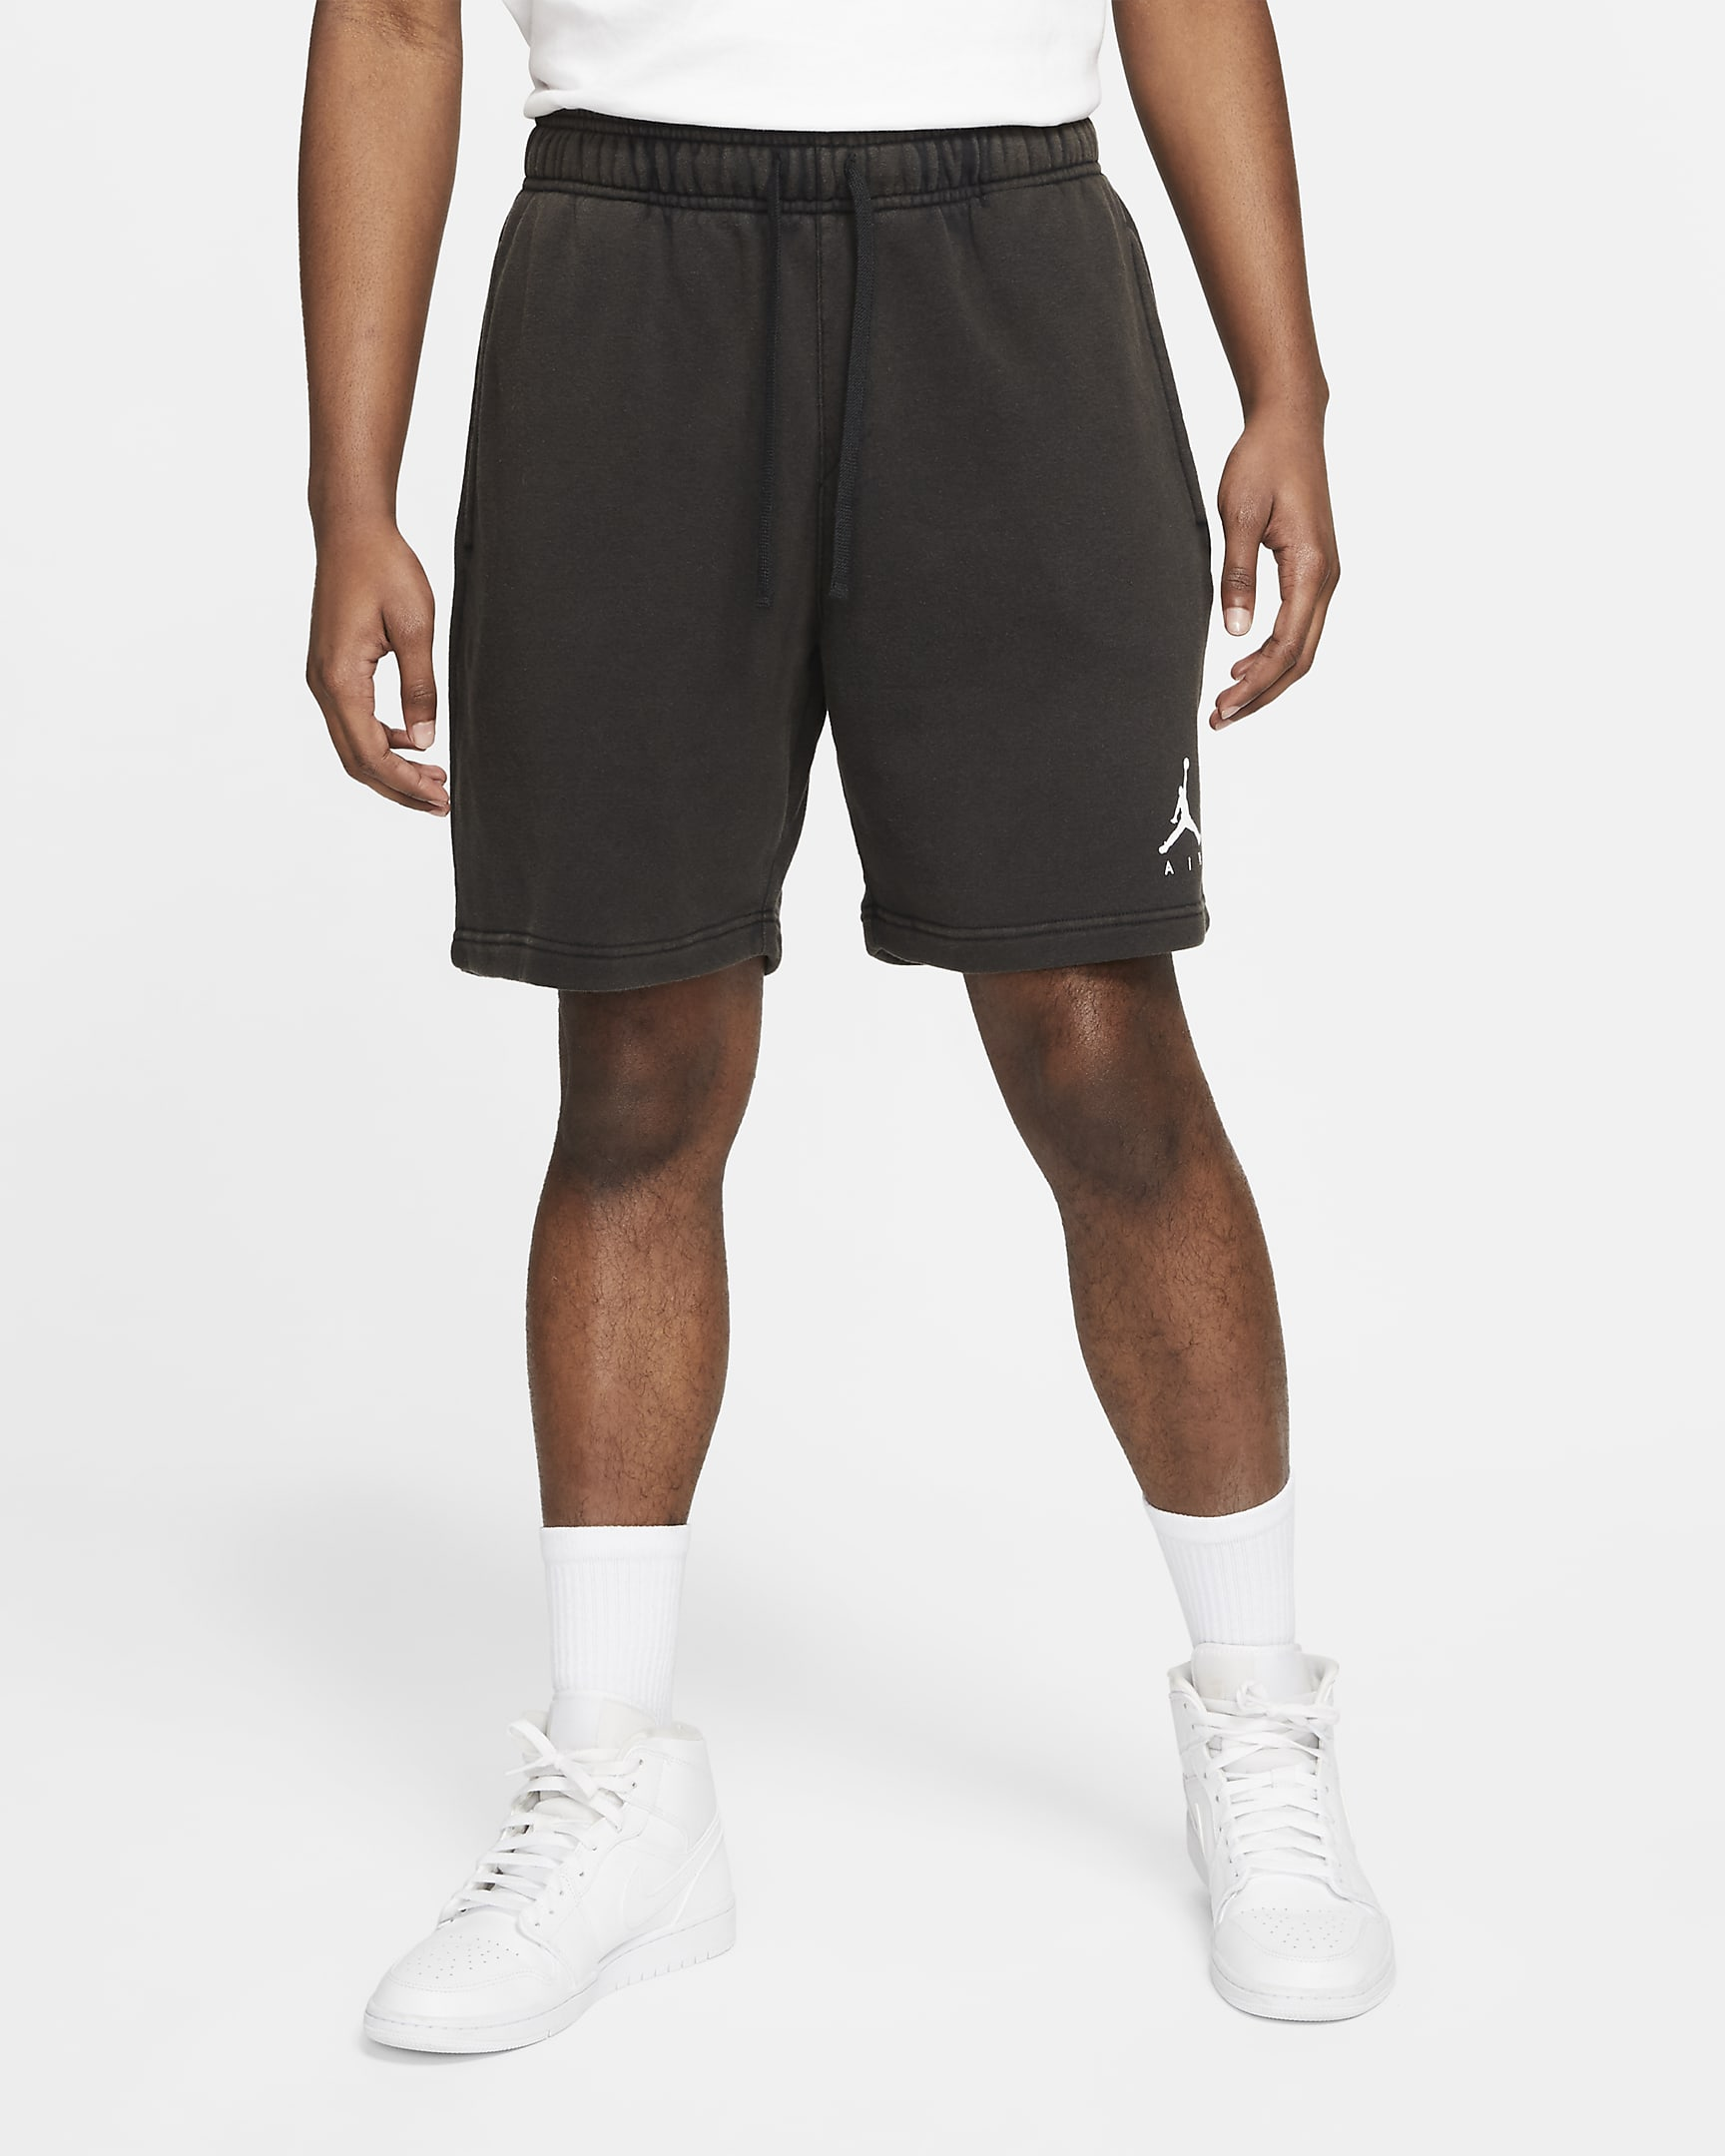 jordan-jumpman-mens-washed-fleece-shorts-0pSq2S-4